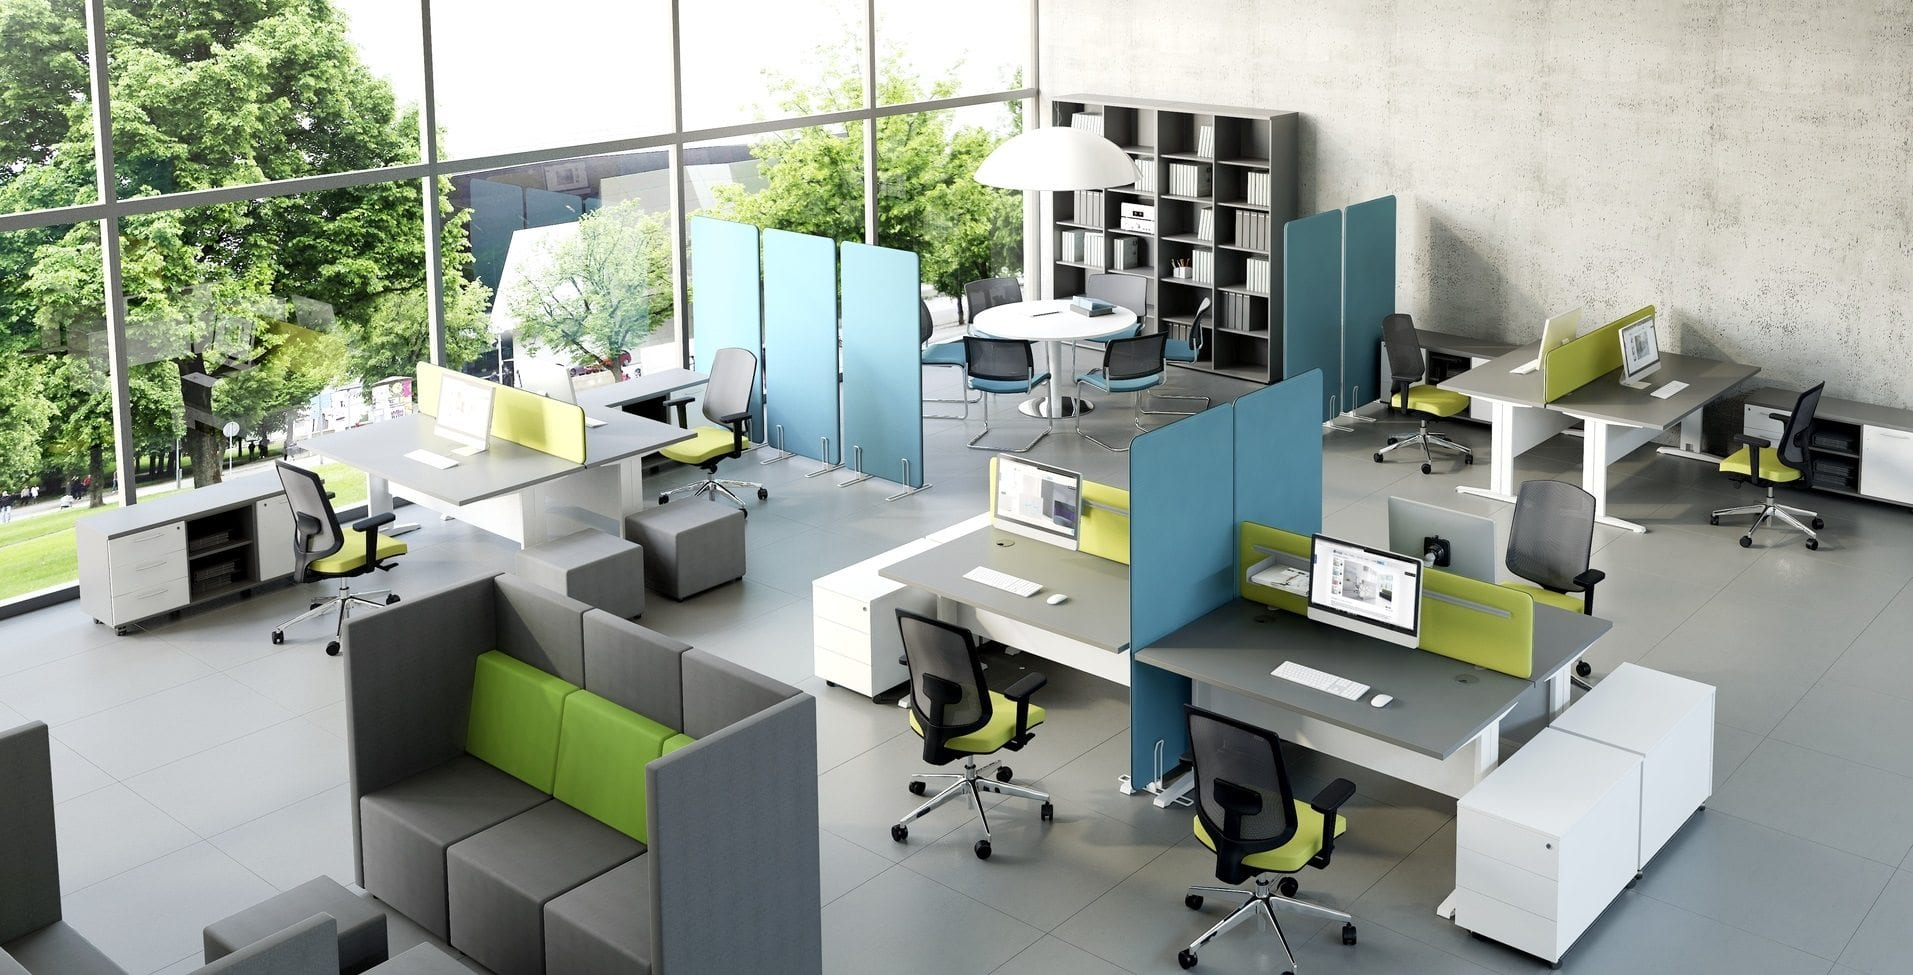 Collaboration-Office-Furniture-Lounge-3-1.jpg